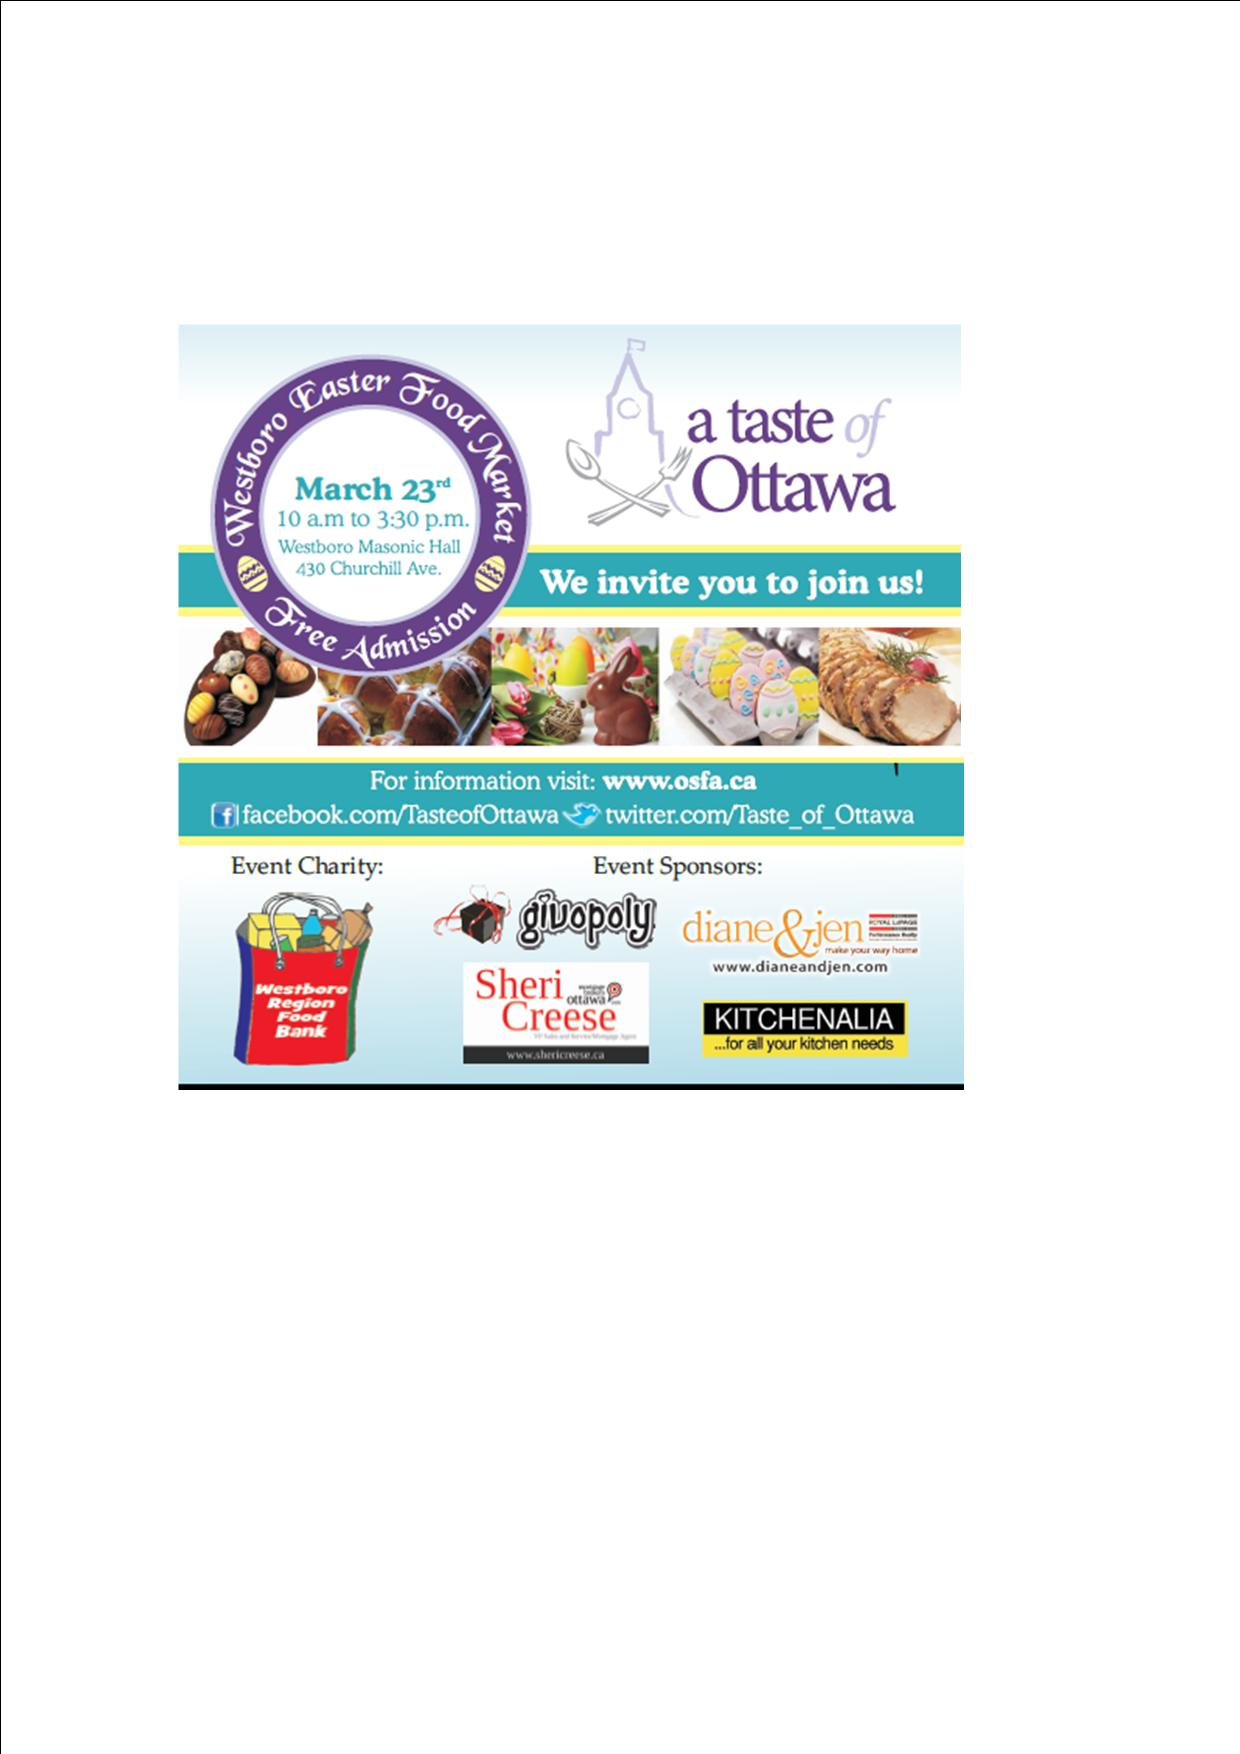 Taste Of Ottawa Westboro Easter Food Market March 23rd From 10 Am To 3 30 Pm Hello Westboro